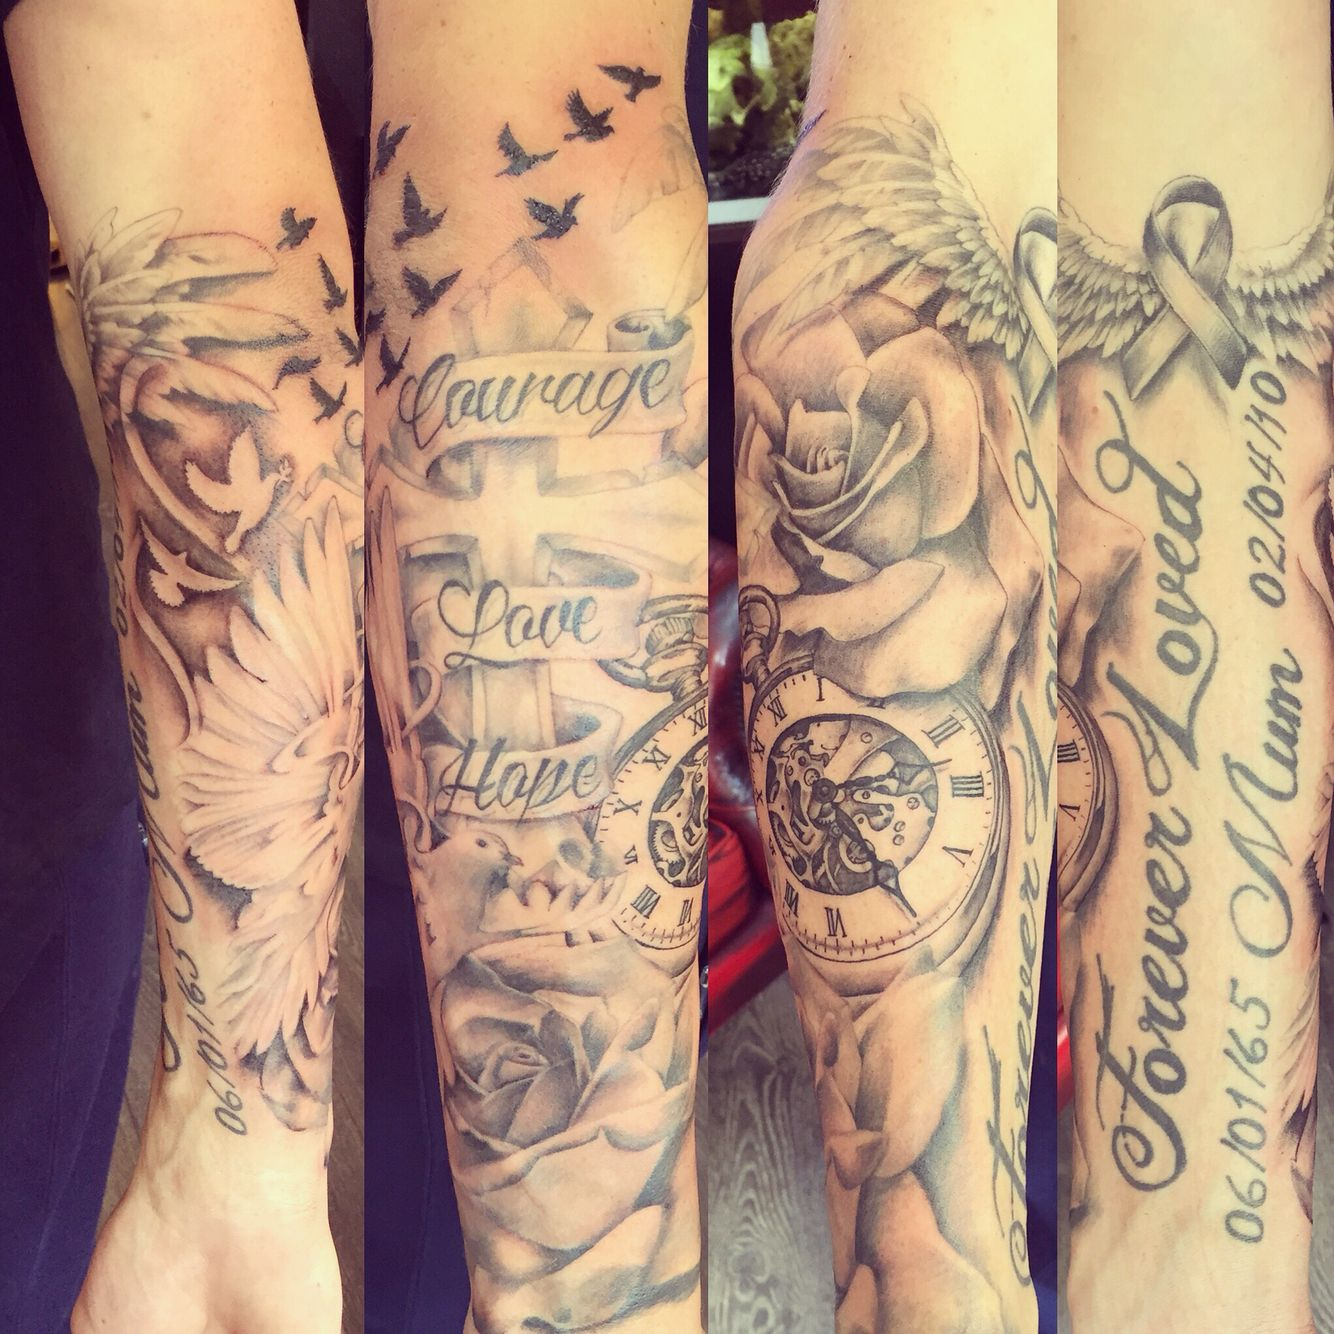 Tattoo Designs Writing: Really Enjoyed This Half Sleeve (writing Not Done By Me